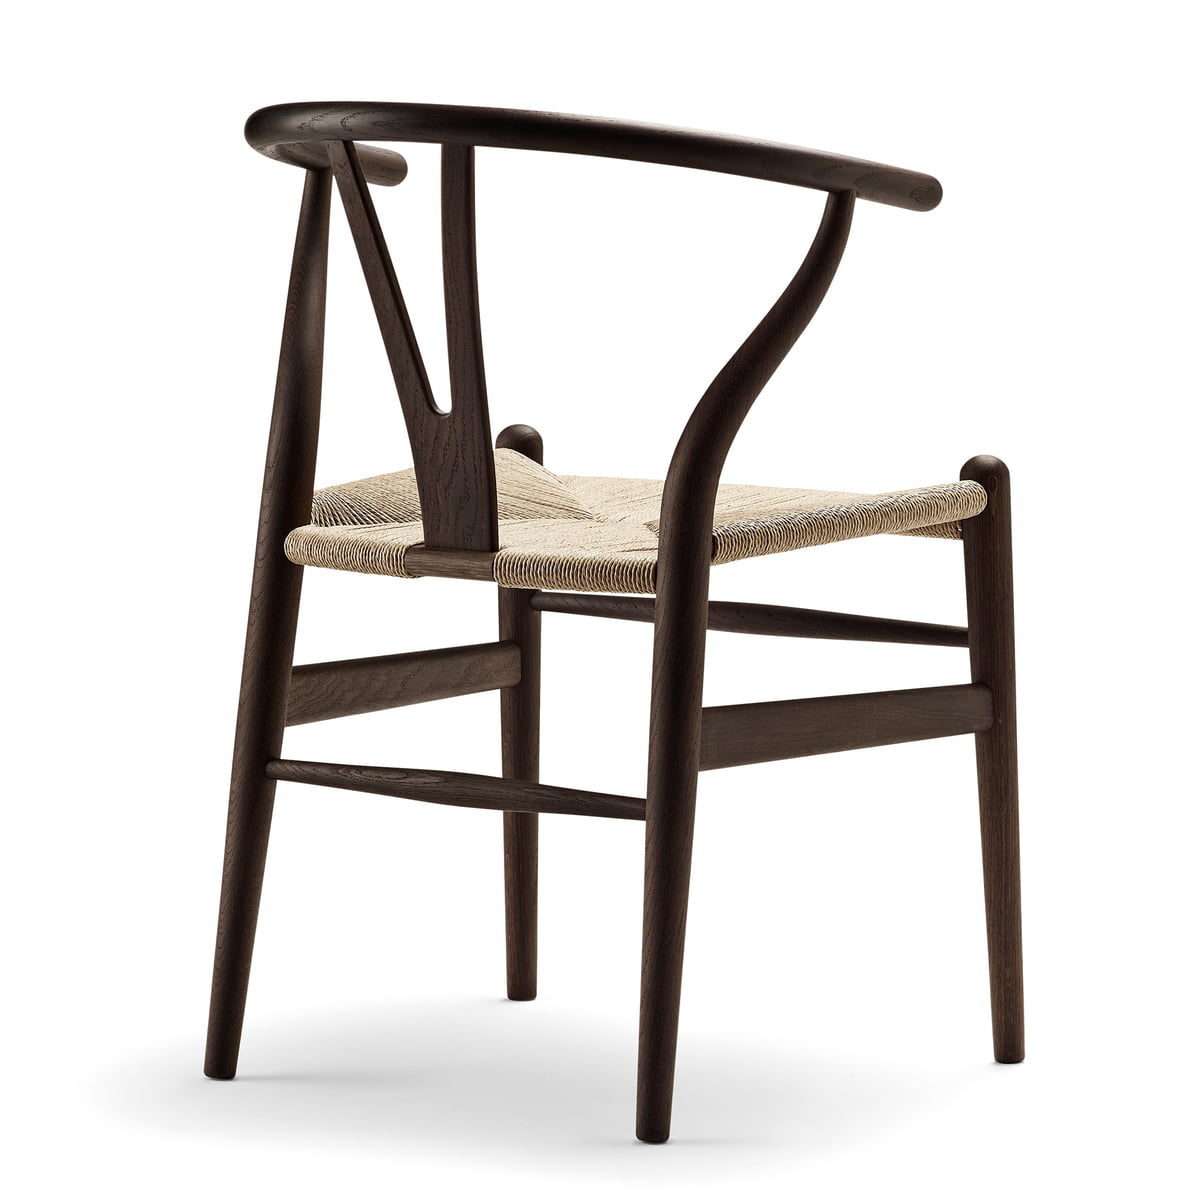 ch24 wishbone chair von carl hansen connox. Black Bedroom Furniture Sets. Home Design Ideas